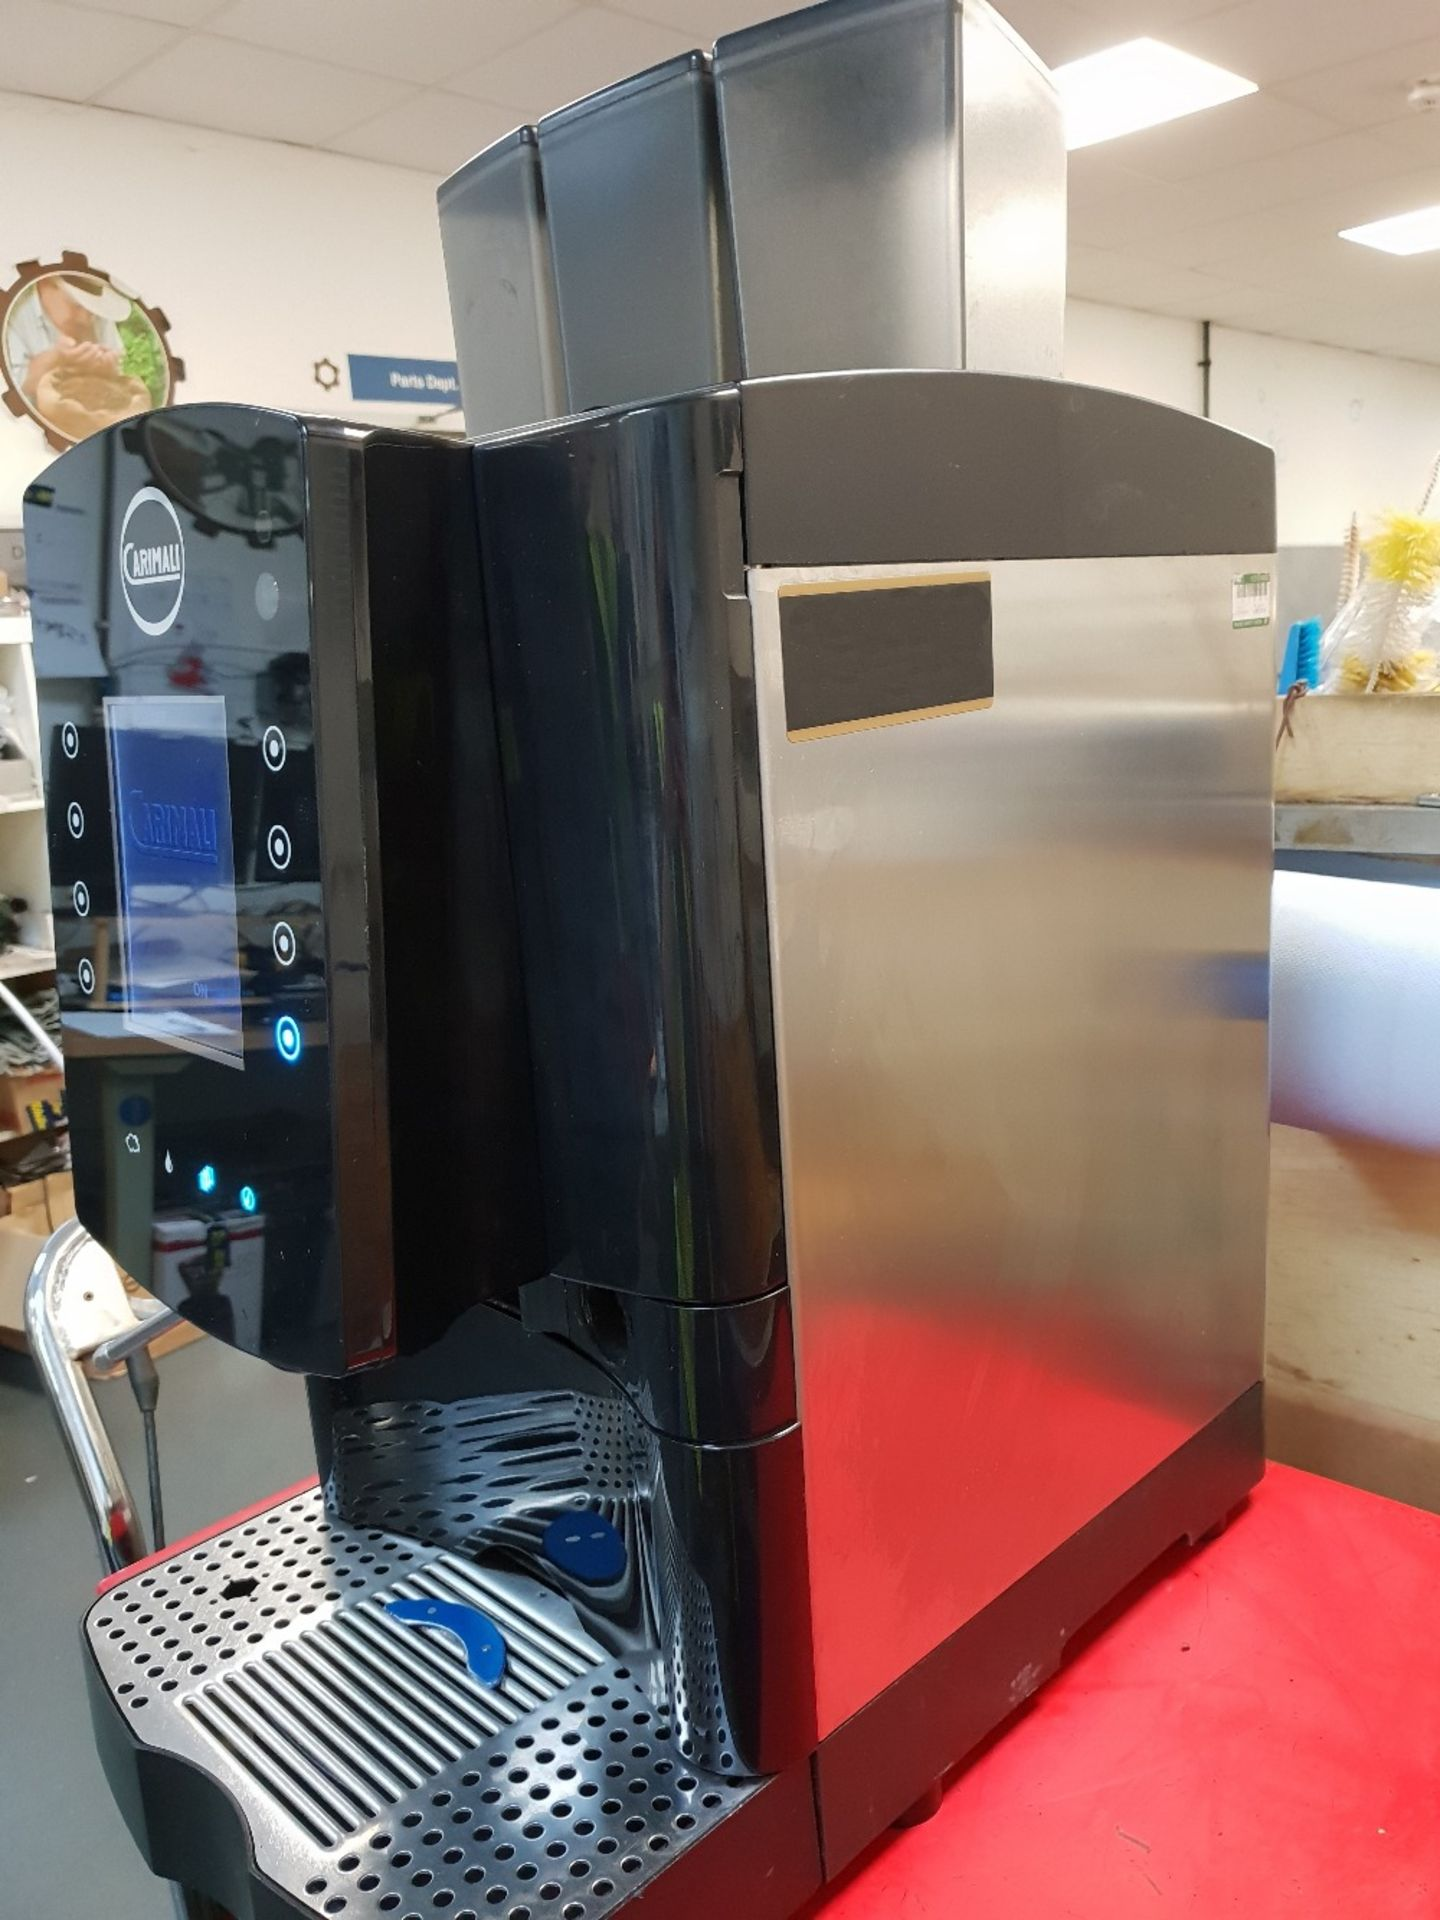 Lot 70 - Carimali Solar Touch Drinks Machine – Bean to cup Coffee + Chocolate & Other DrinksThe Carimali